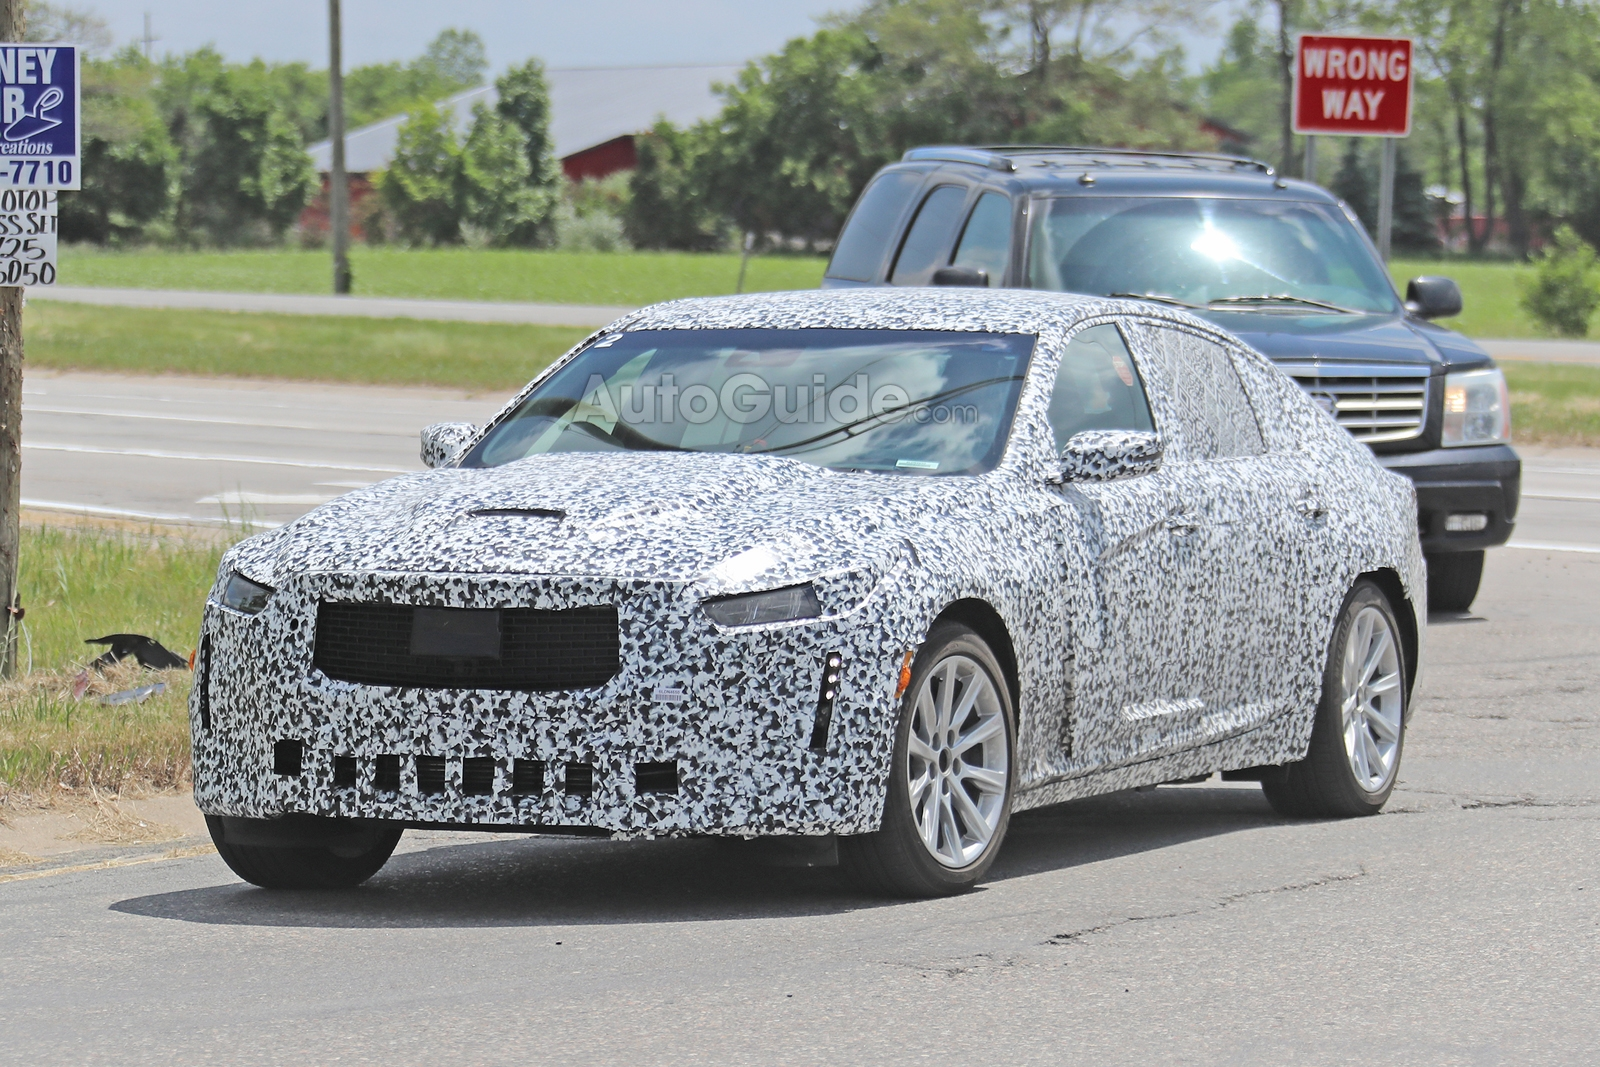 Cadillac CT5 Spied Looking Ready to Replace ATS and CTS » AutoGuide.com News